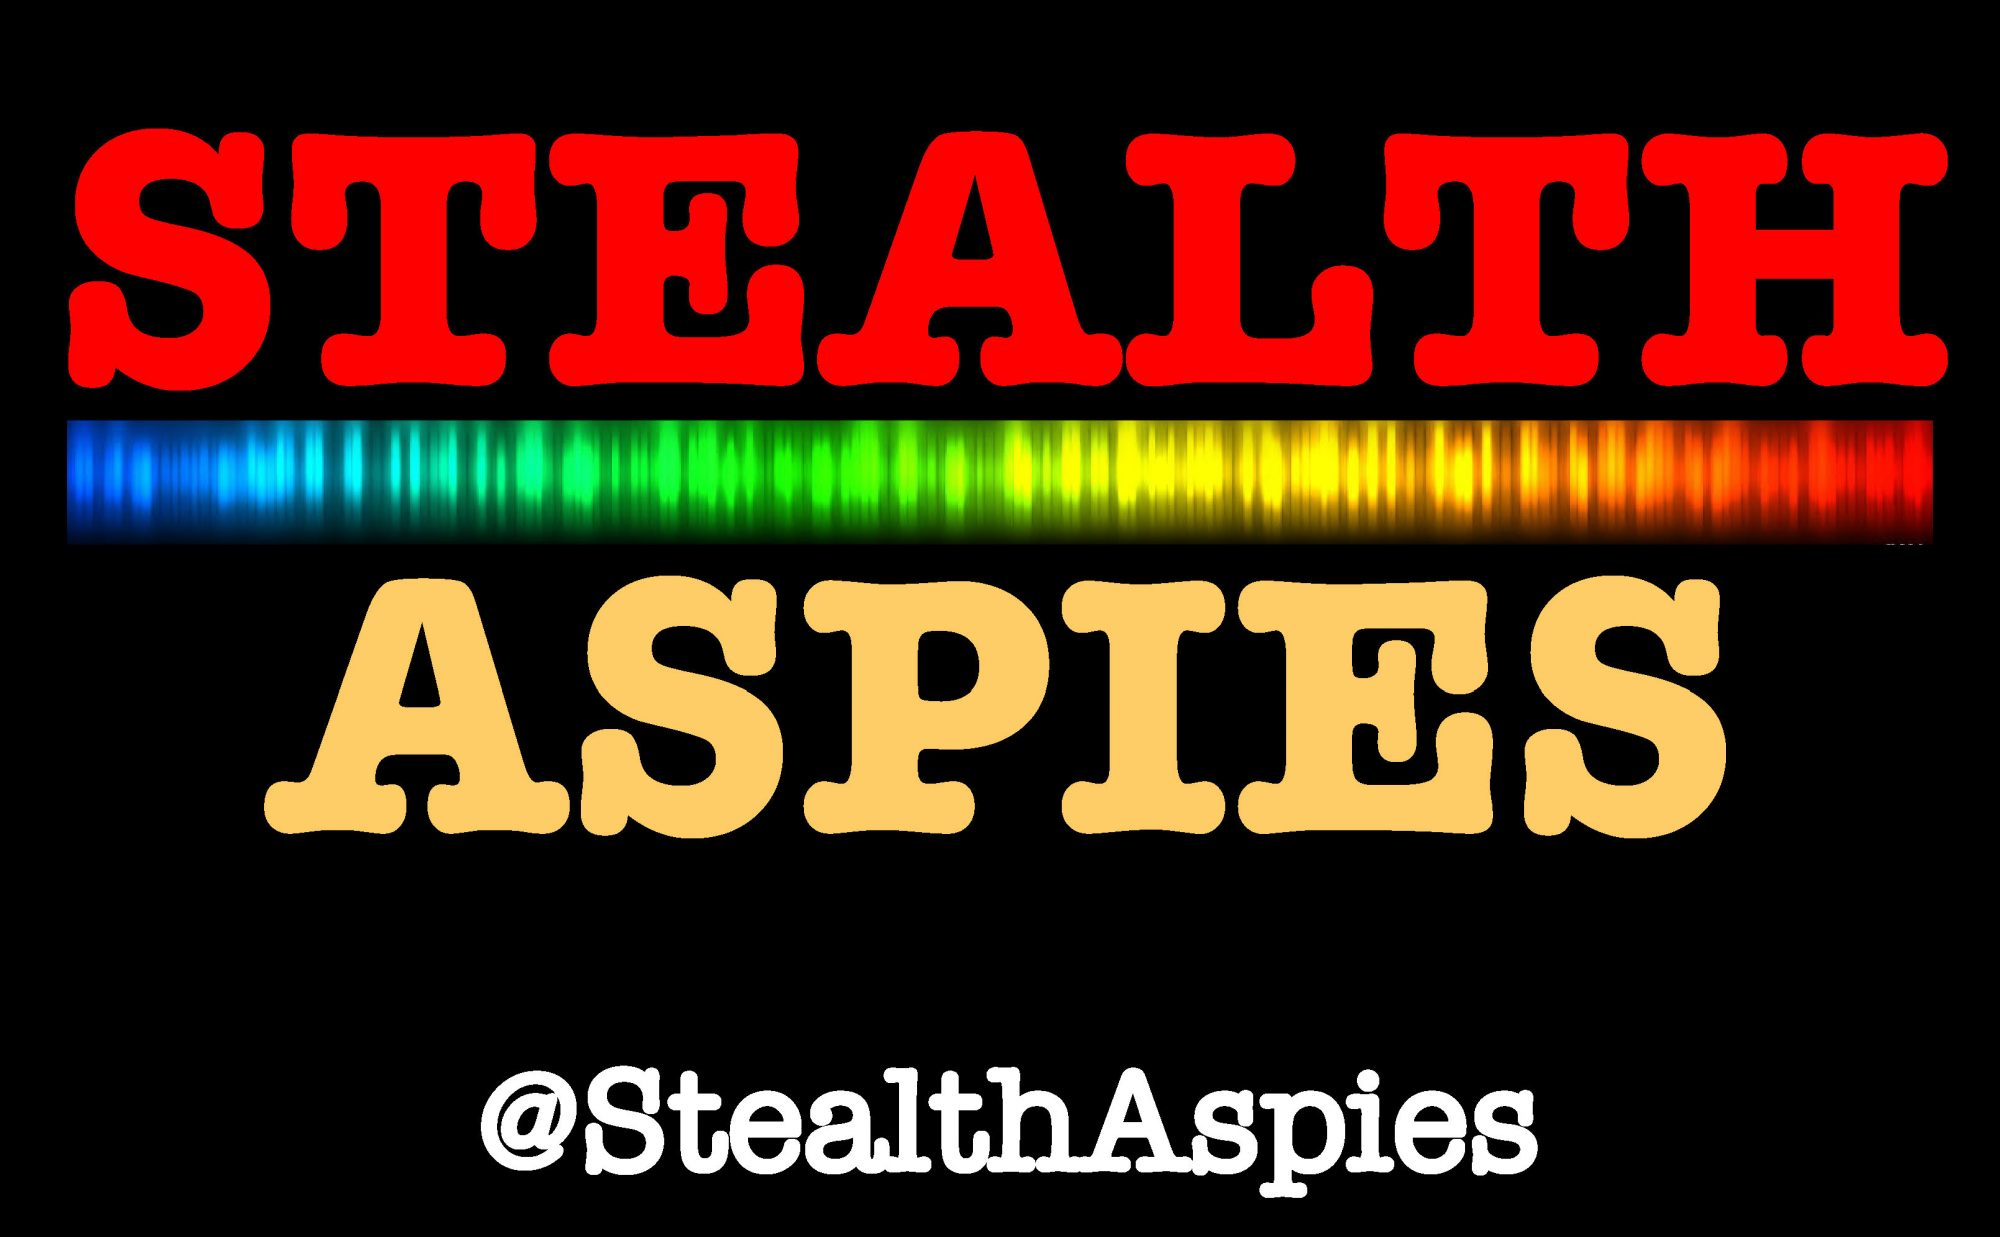 Stealth Aspies